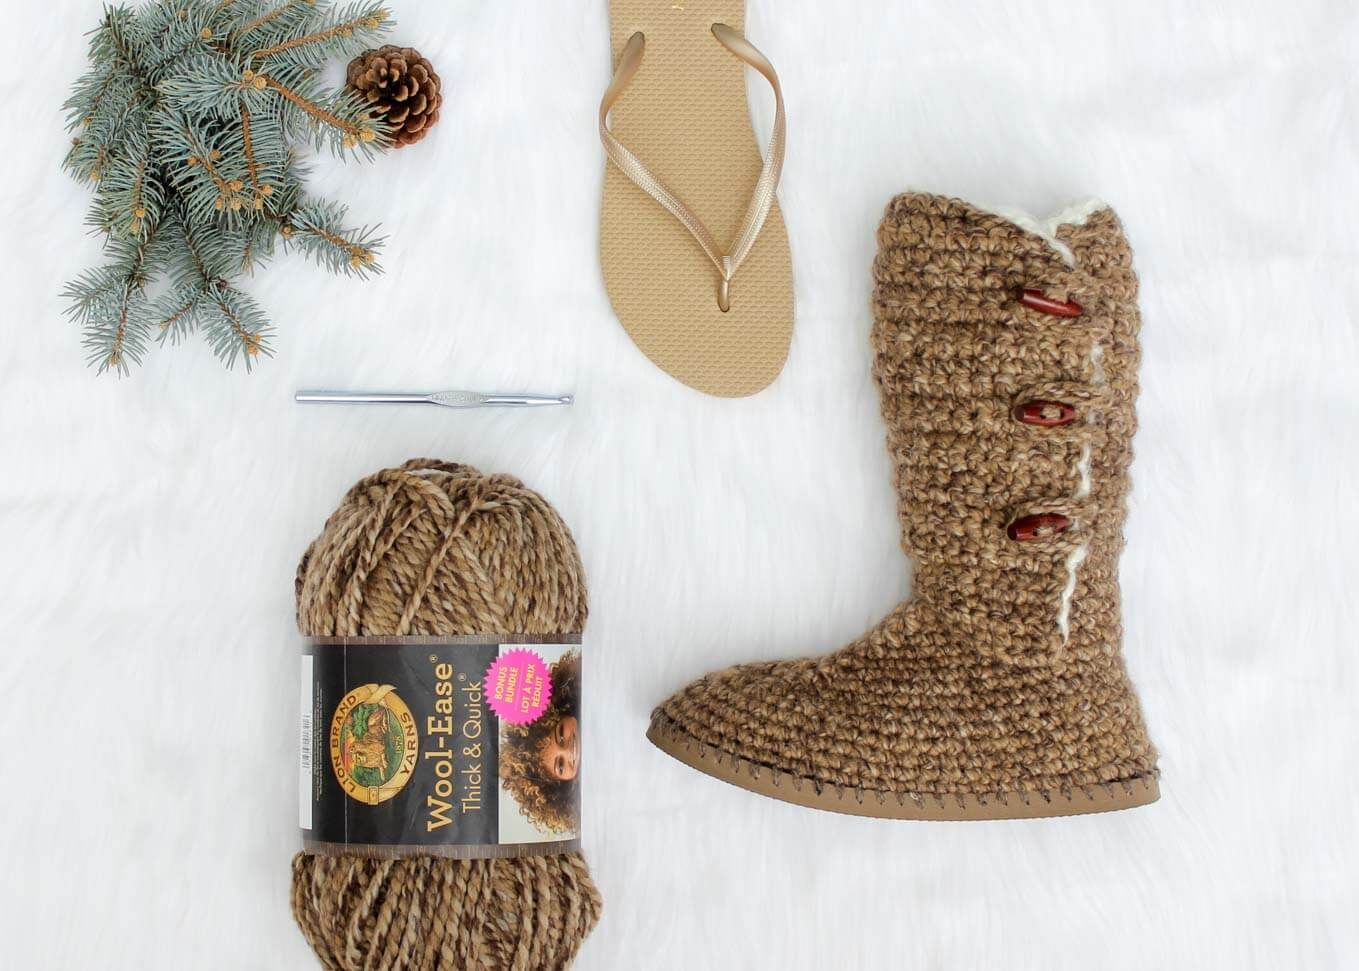 Crochet Boots With Flip Flop Soles - Free Pattern + Video | Hooked ...